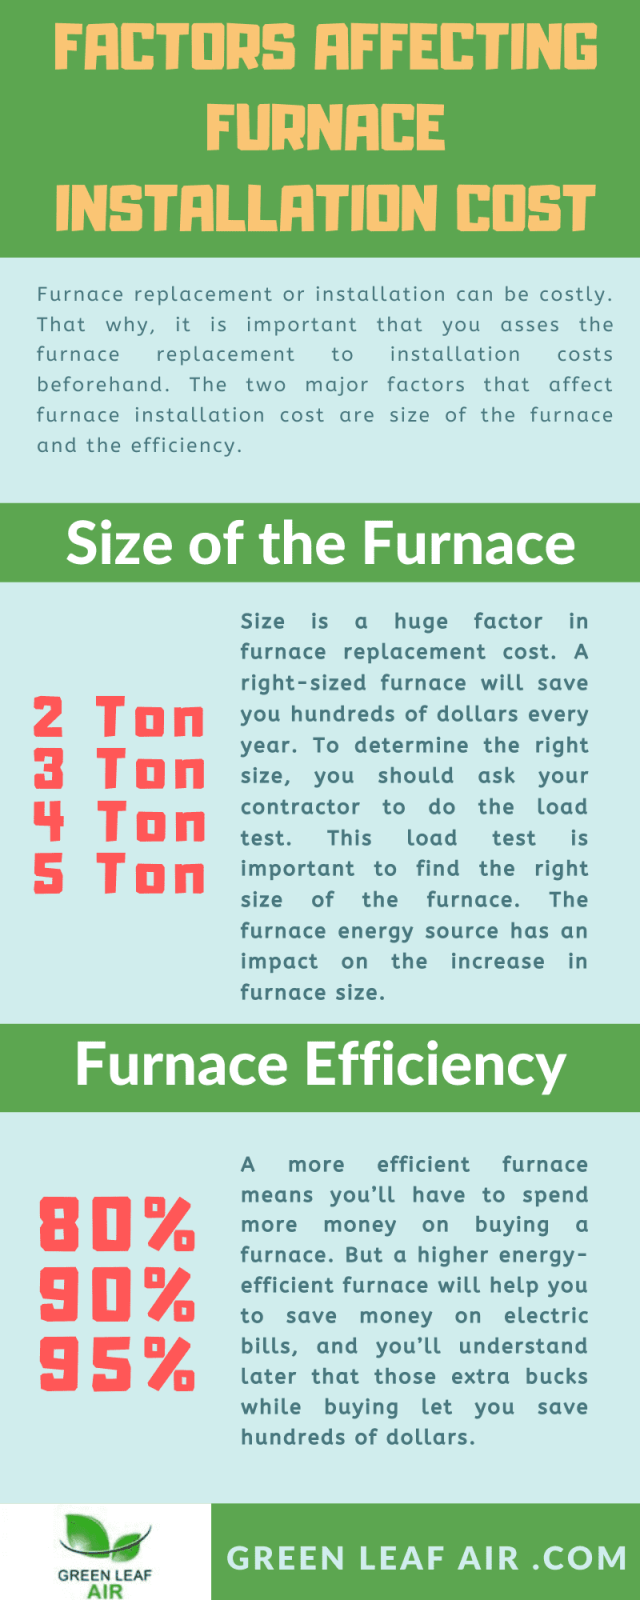 Factors Affecting Furnace Installation Cost